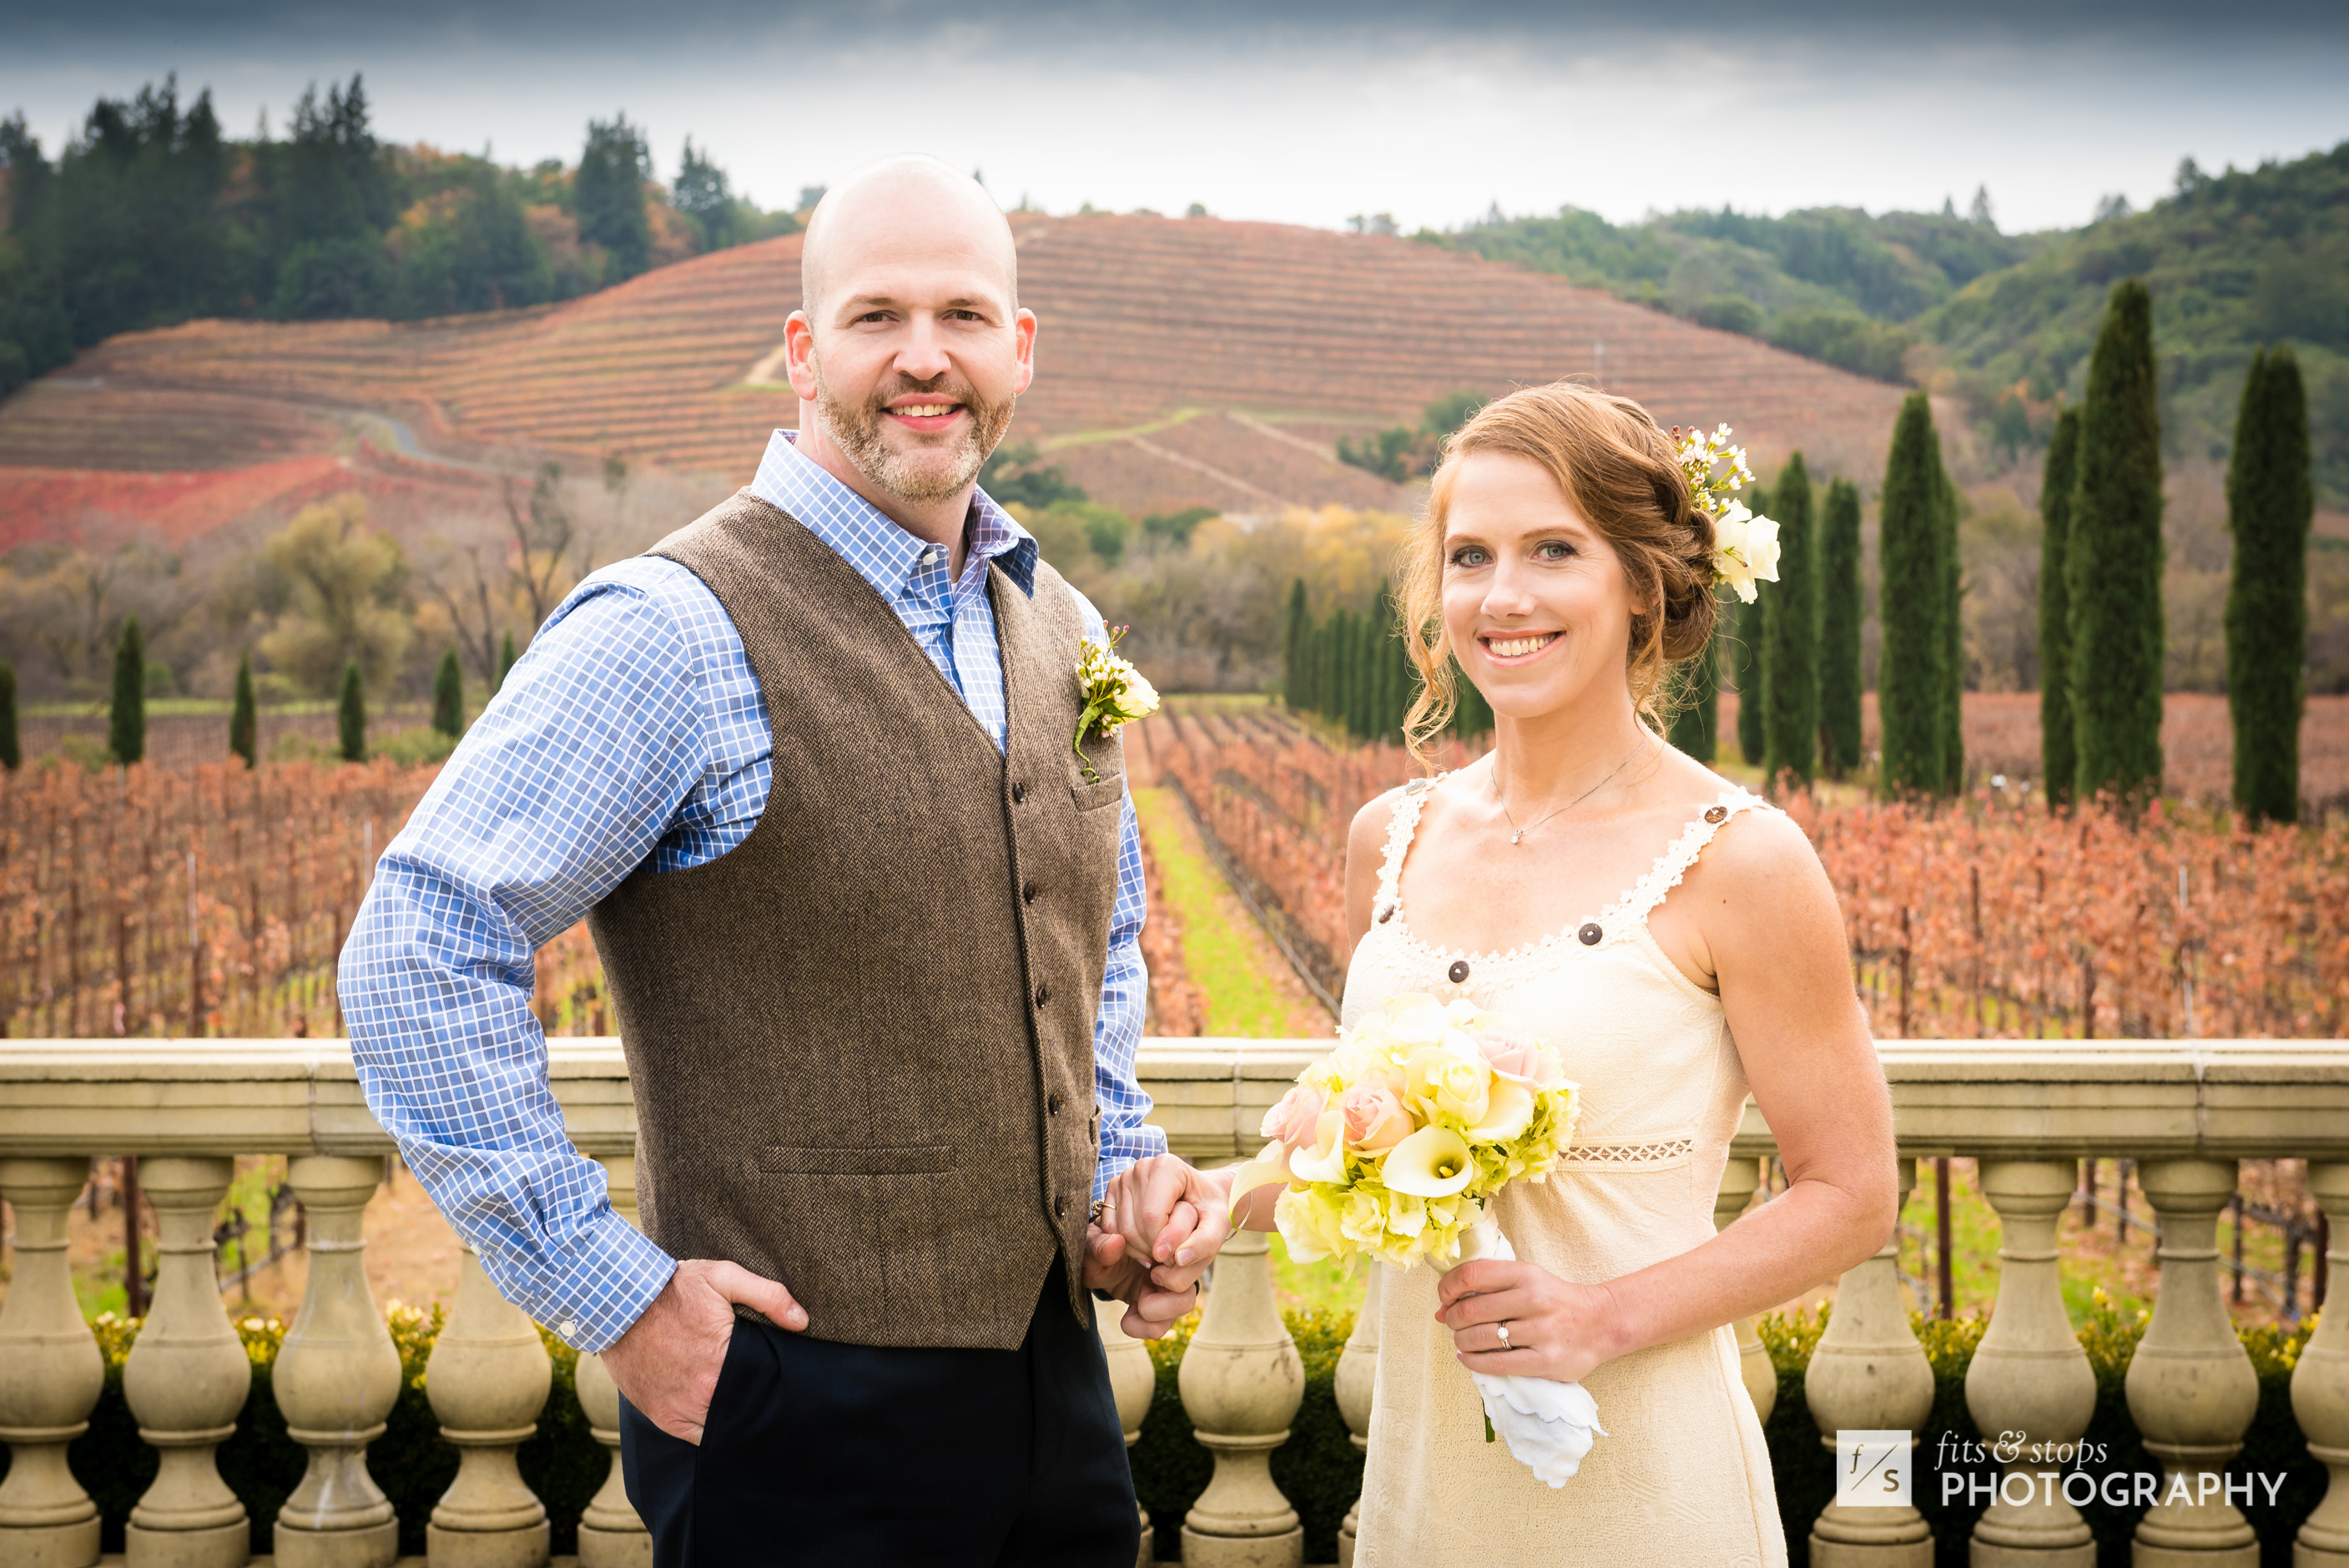 A newly married couple poses for a photograph in front of a vineyard in Northern California.